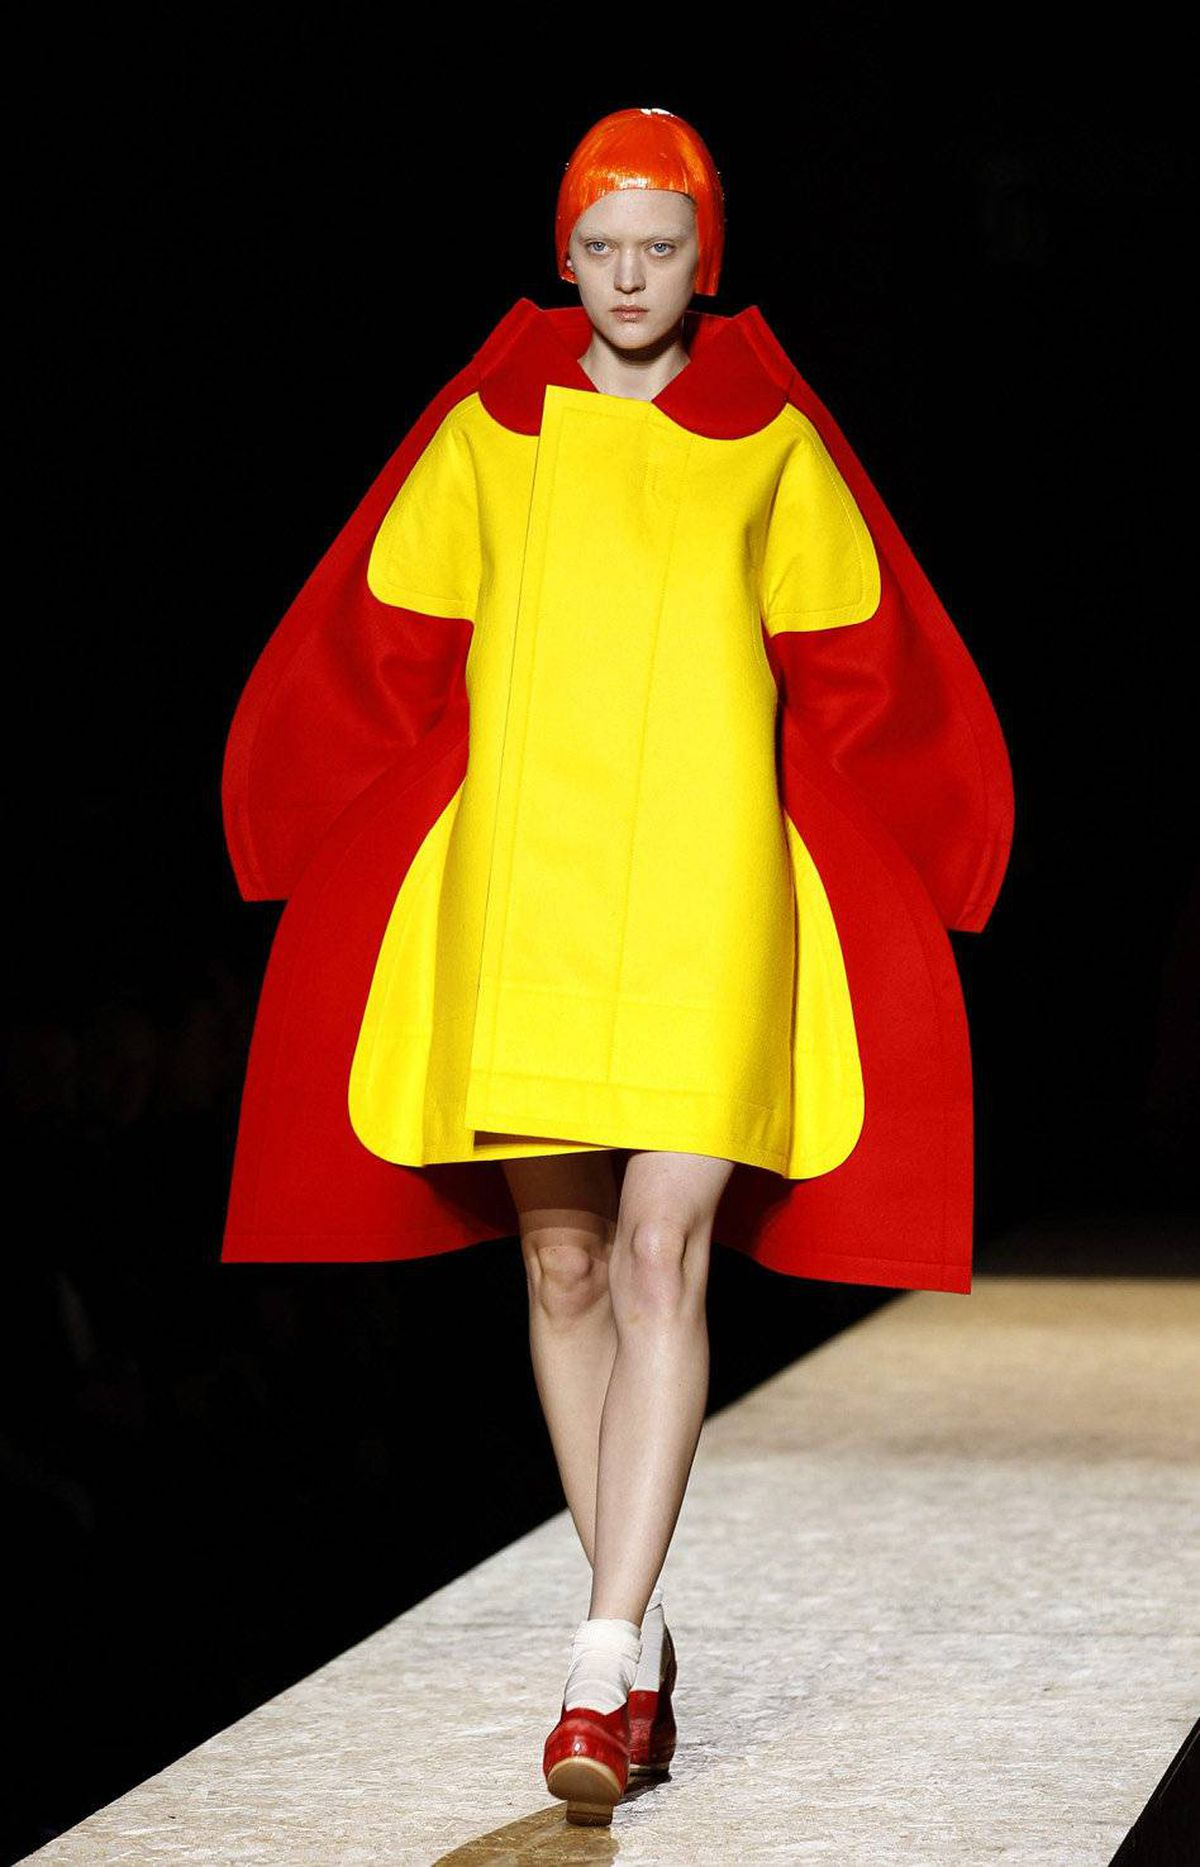 Just in case you had any doubt, this look proves that designer Rei Kawakubo realizes the absurdity of her theme. Interestingly and intentionally, the juxtaposition of dress-on-dress still manages to look completely flat.